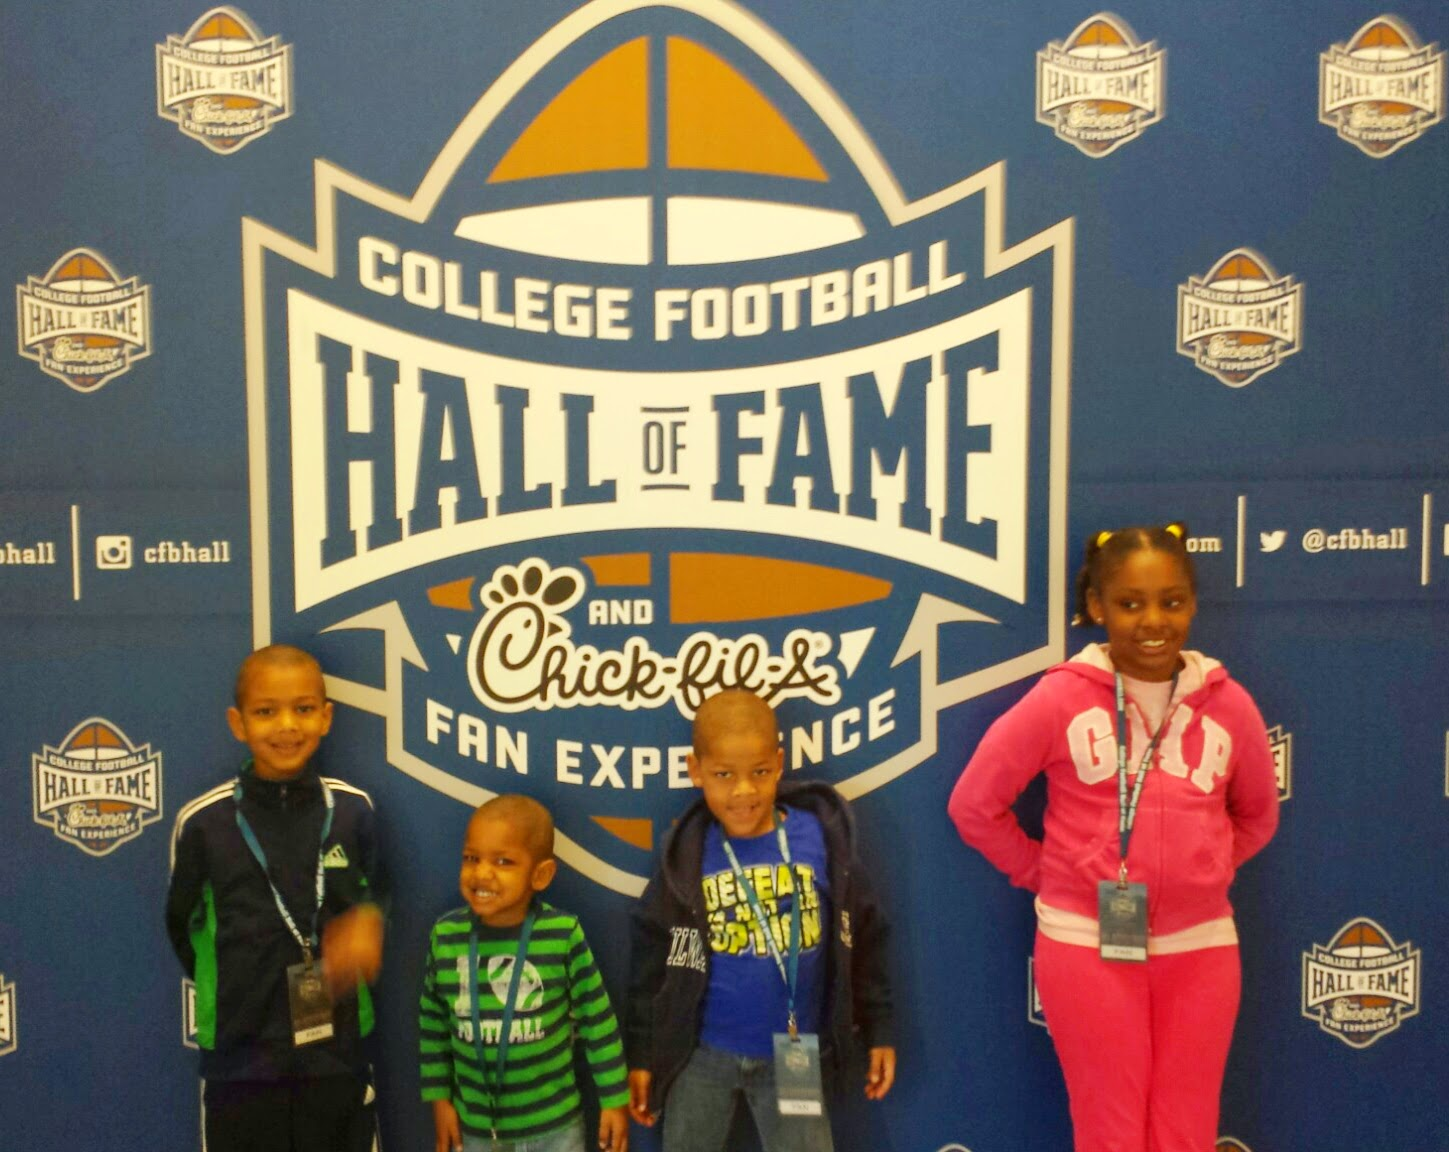 College Football Hall of Fame kids by the logo